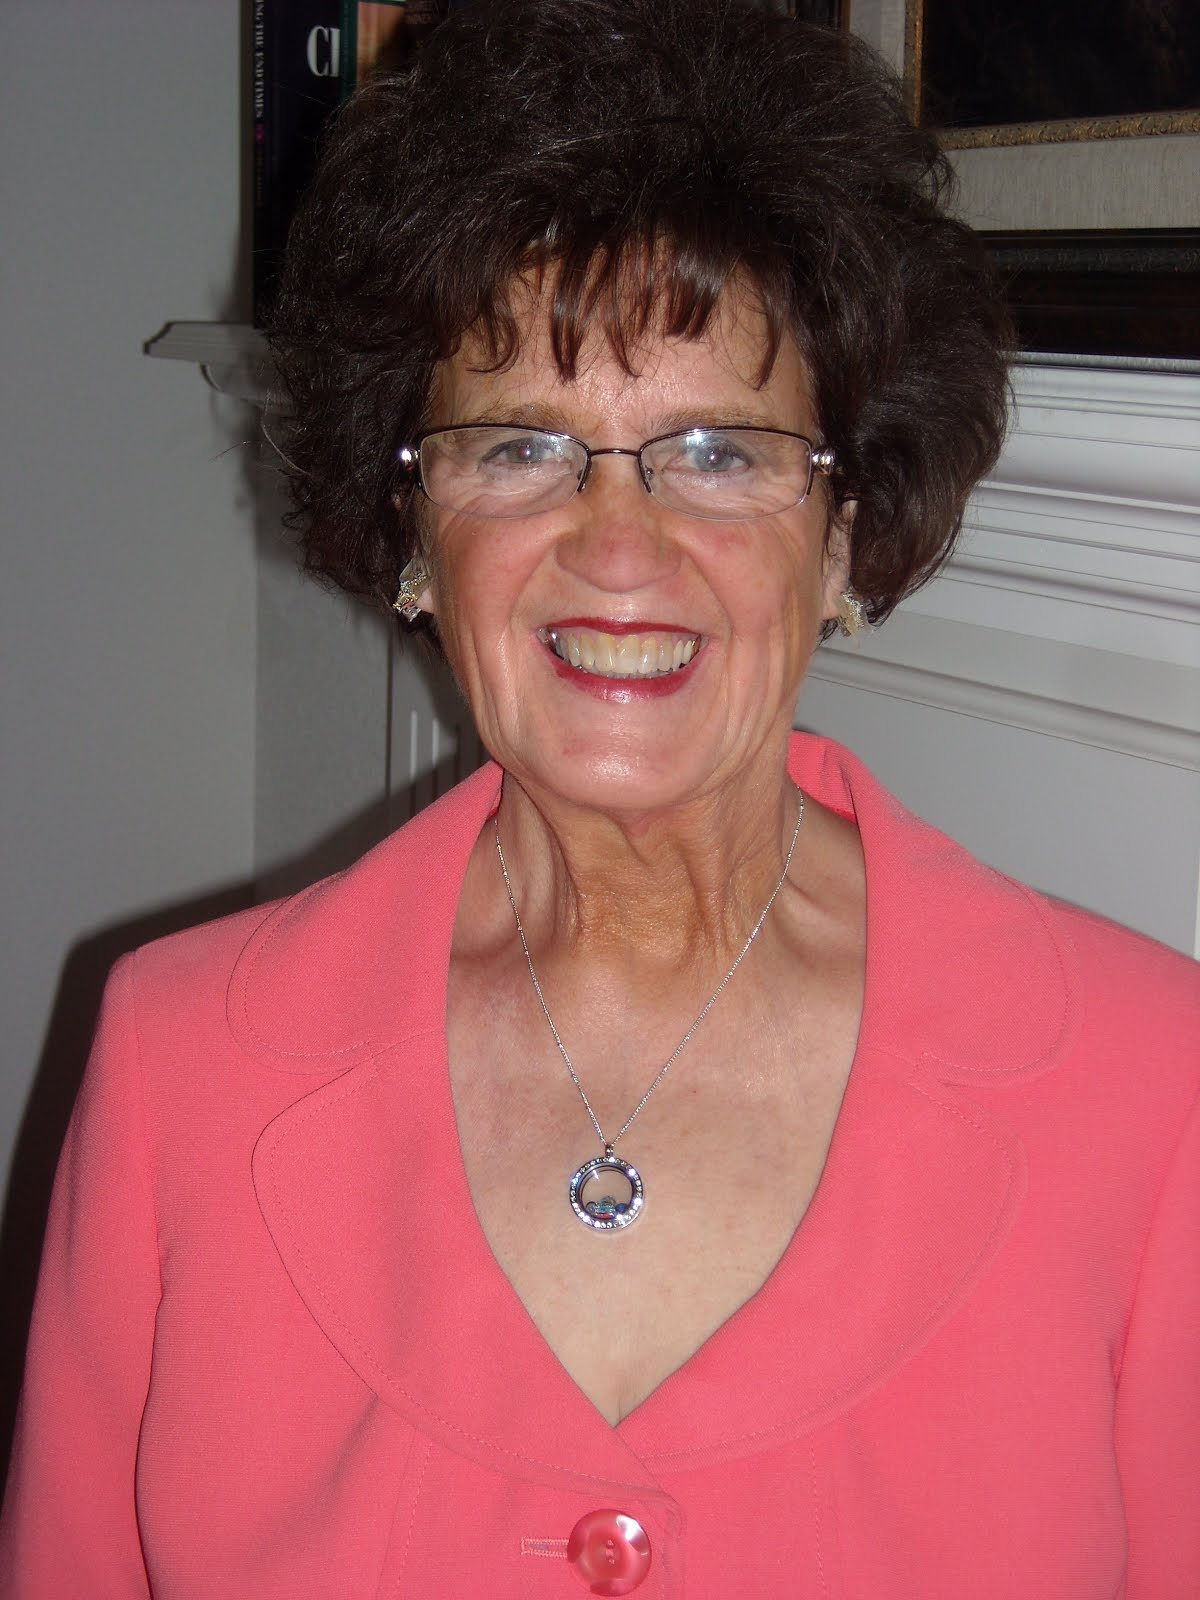 Janet K. Brown